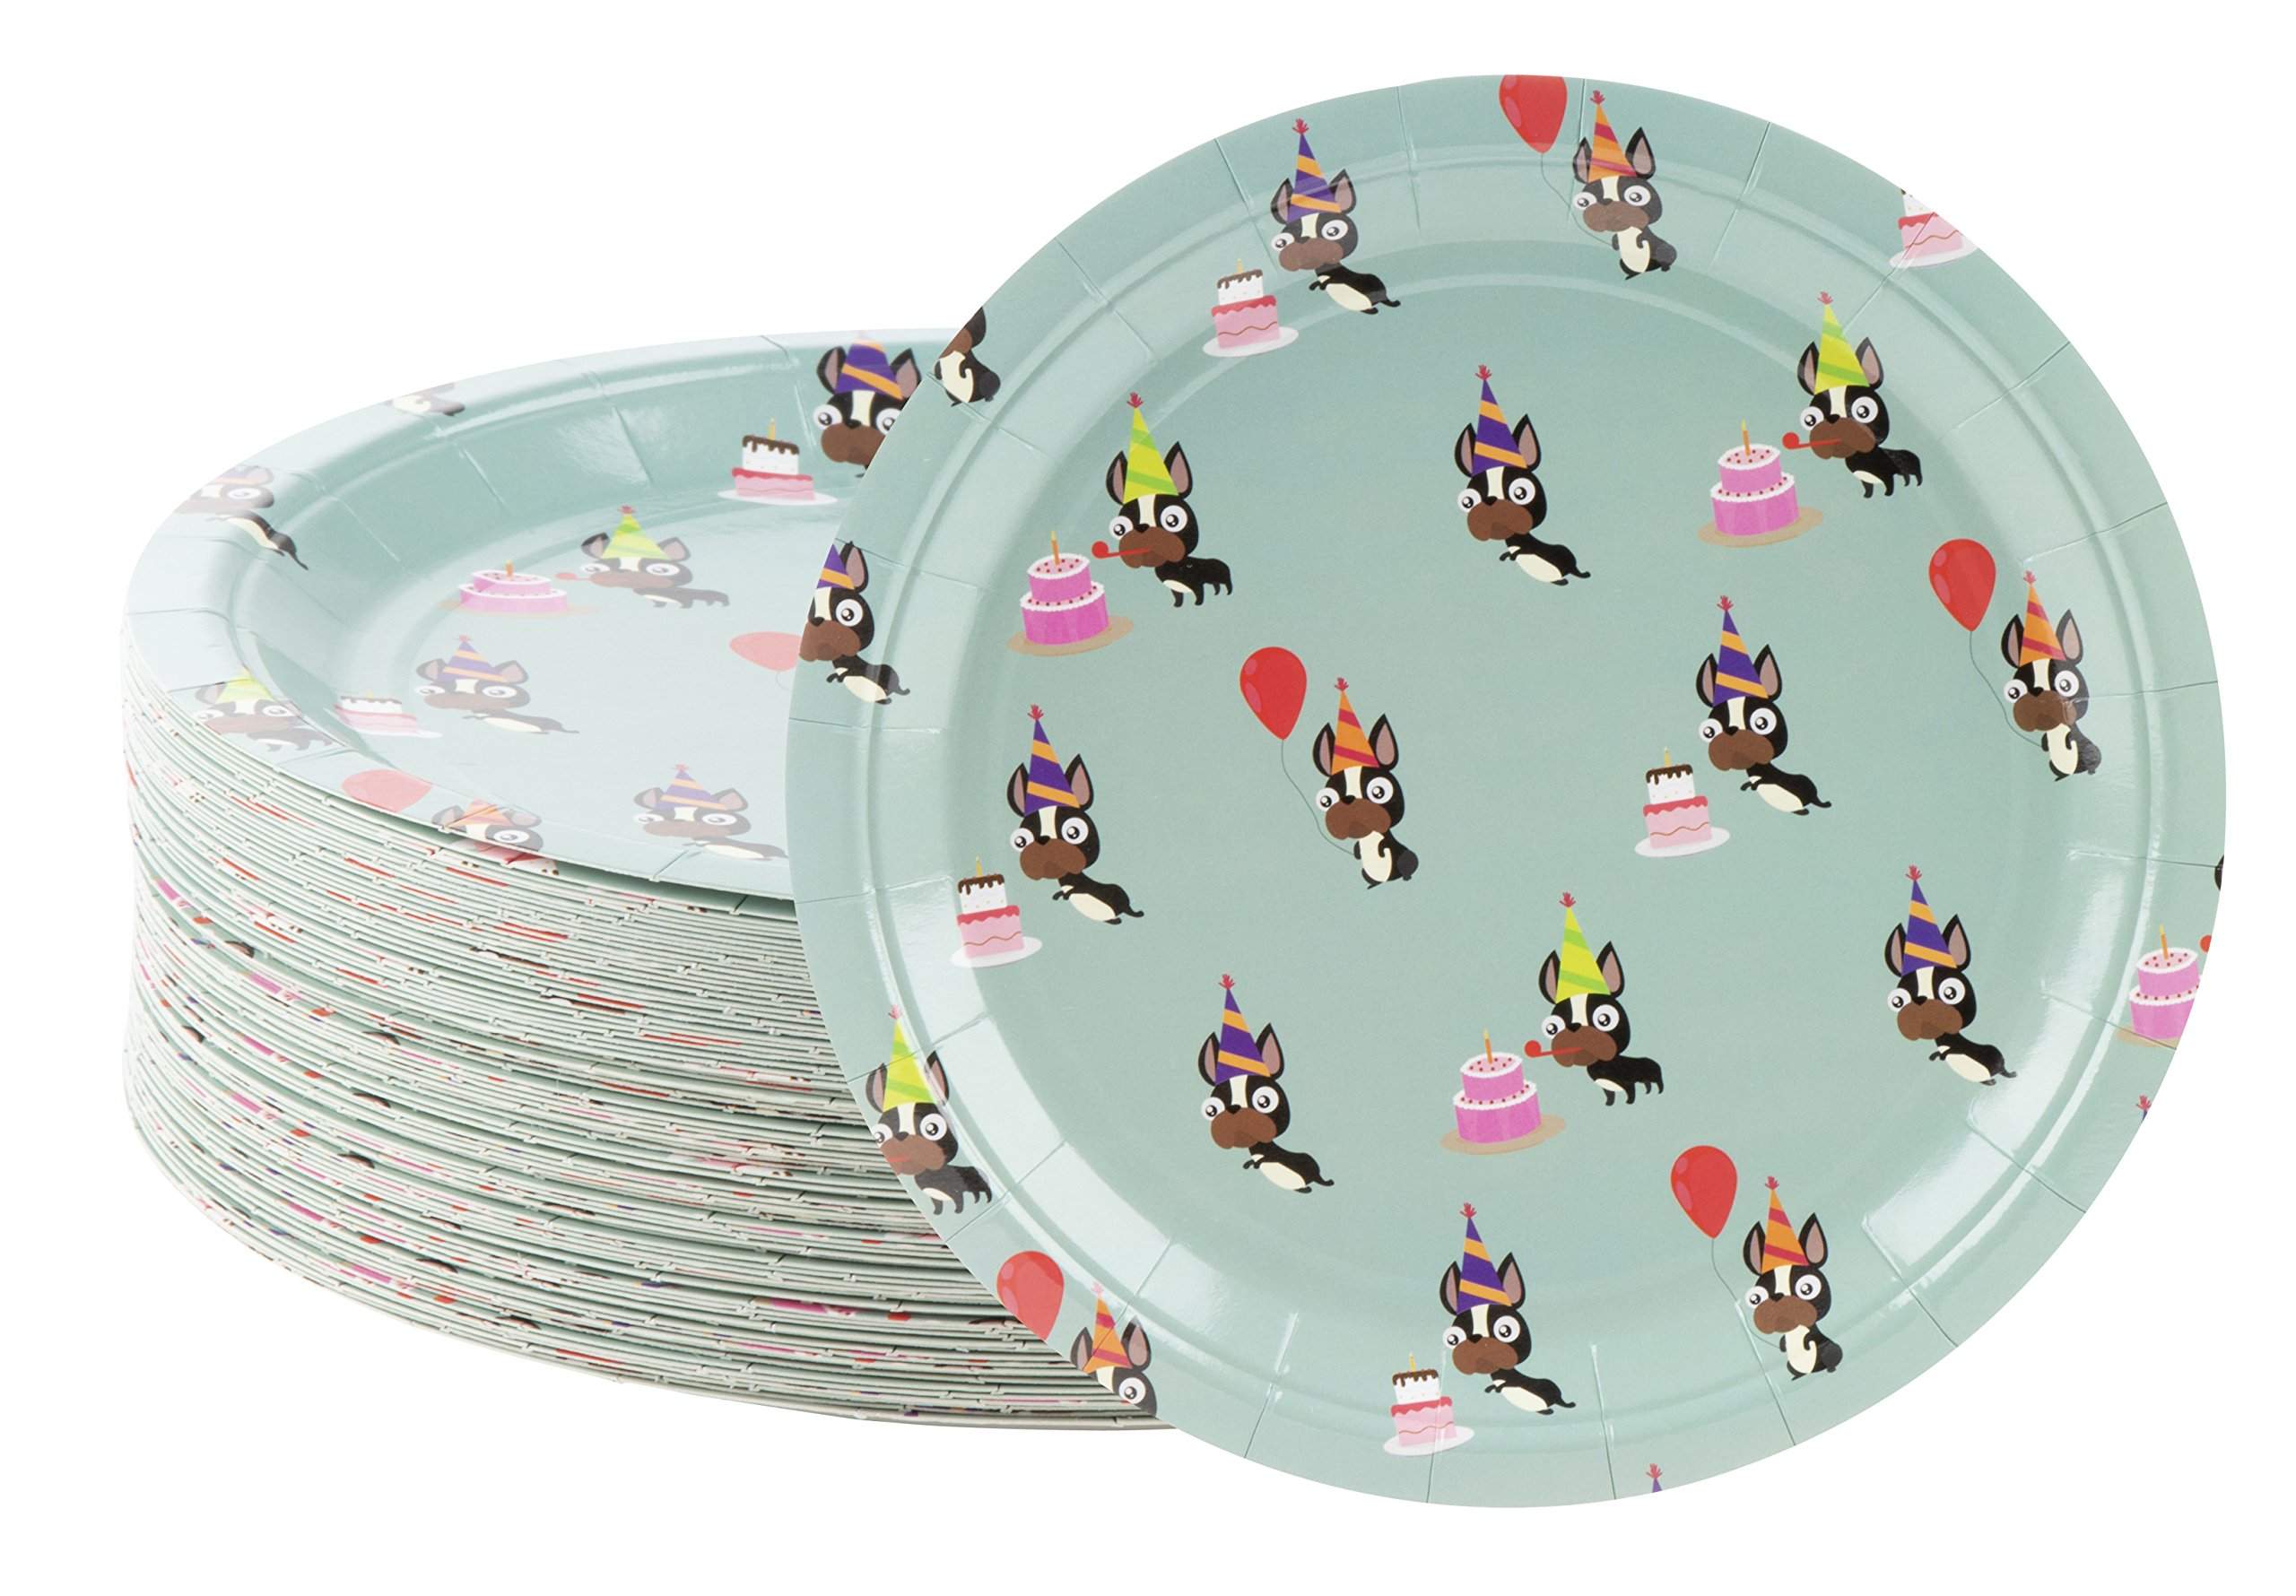 Disposable Plates - 80-Count Paper Plates, Kids Birthday Party Supplies for Appetizer, Lunch, Dinner, and Dessert, French Bulldog Design, 9 x 9 inches by Blue Panda